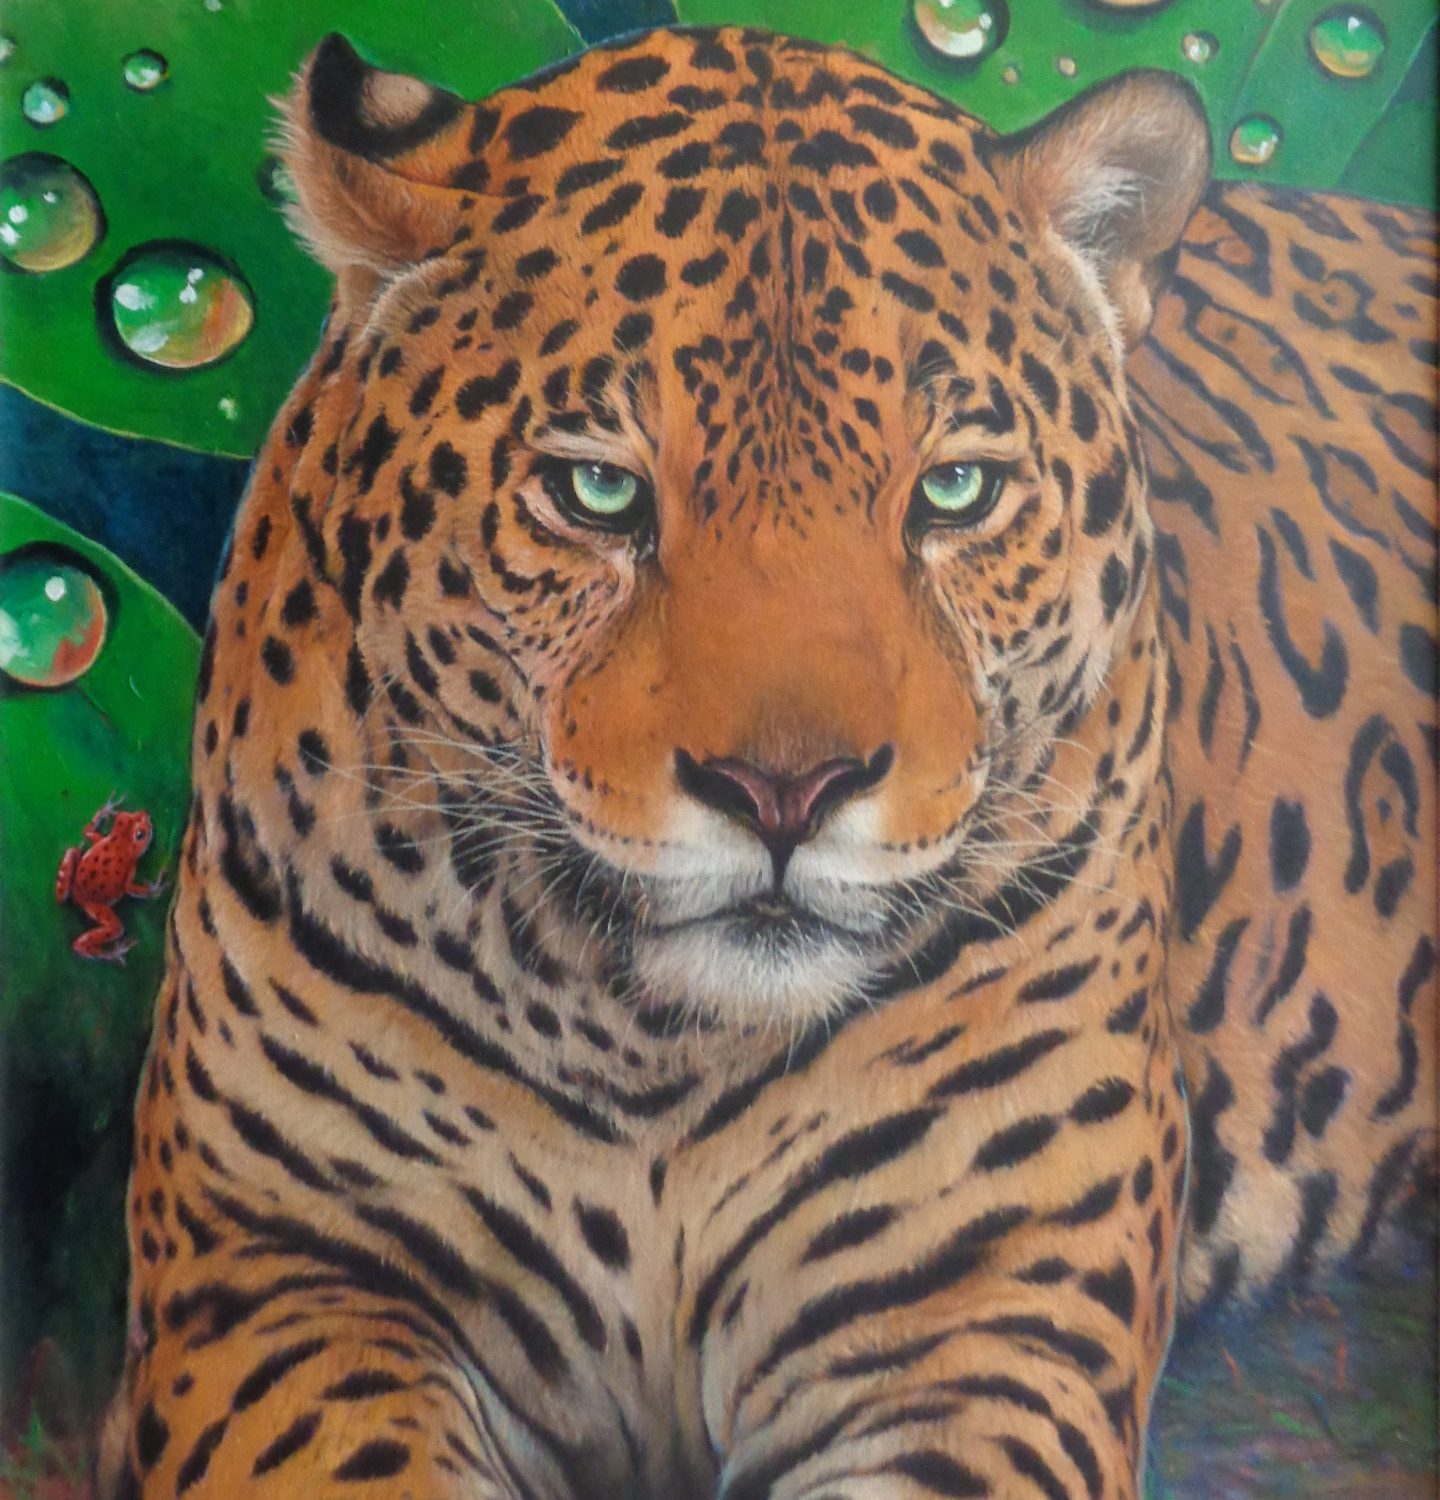 "Bengal Tiger - 40"" x 30"" - Oil on Canvas - Wayne Weberbauer"